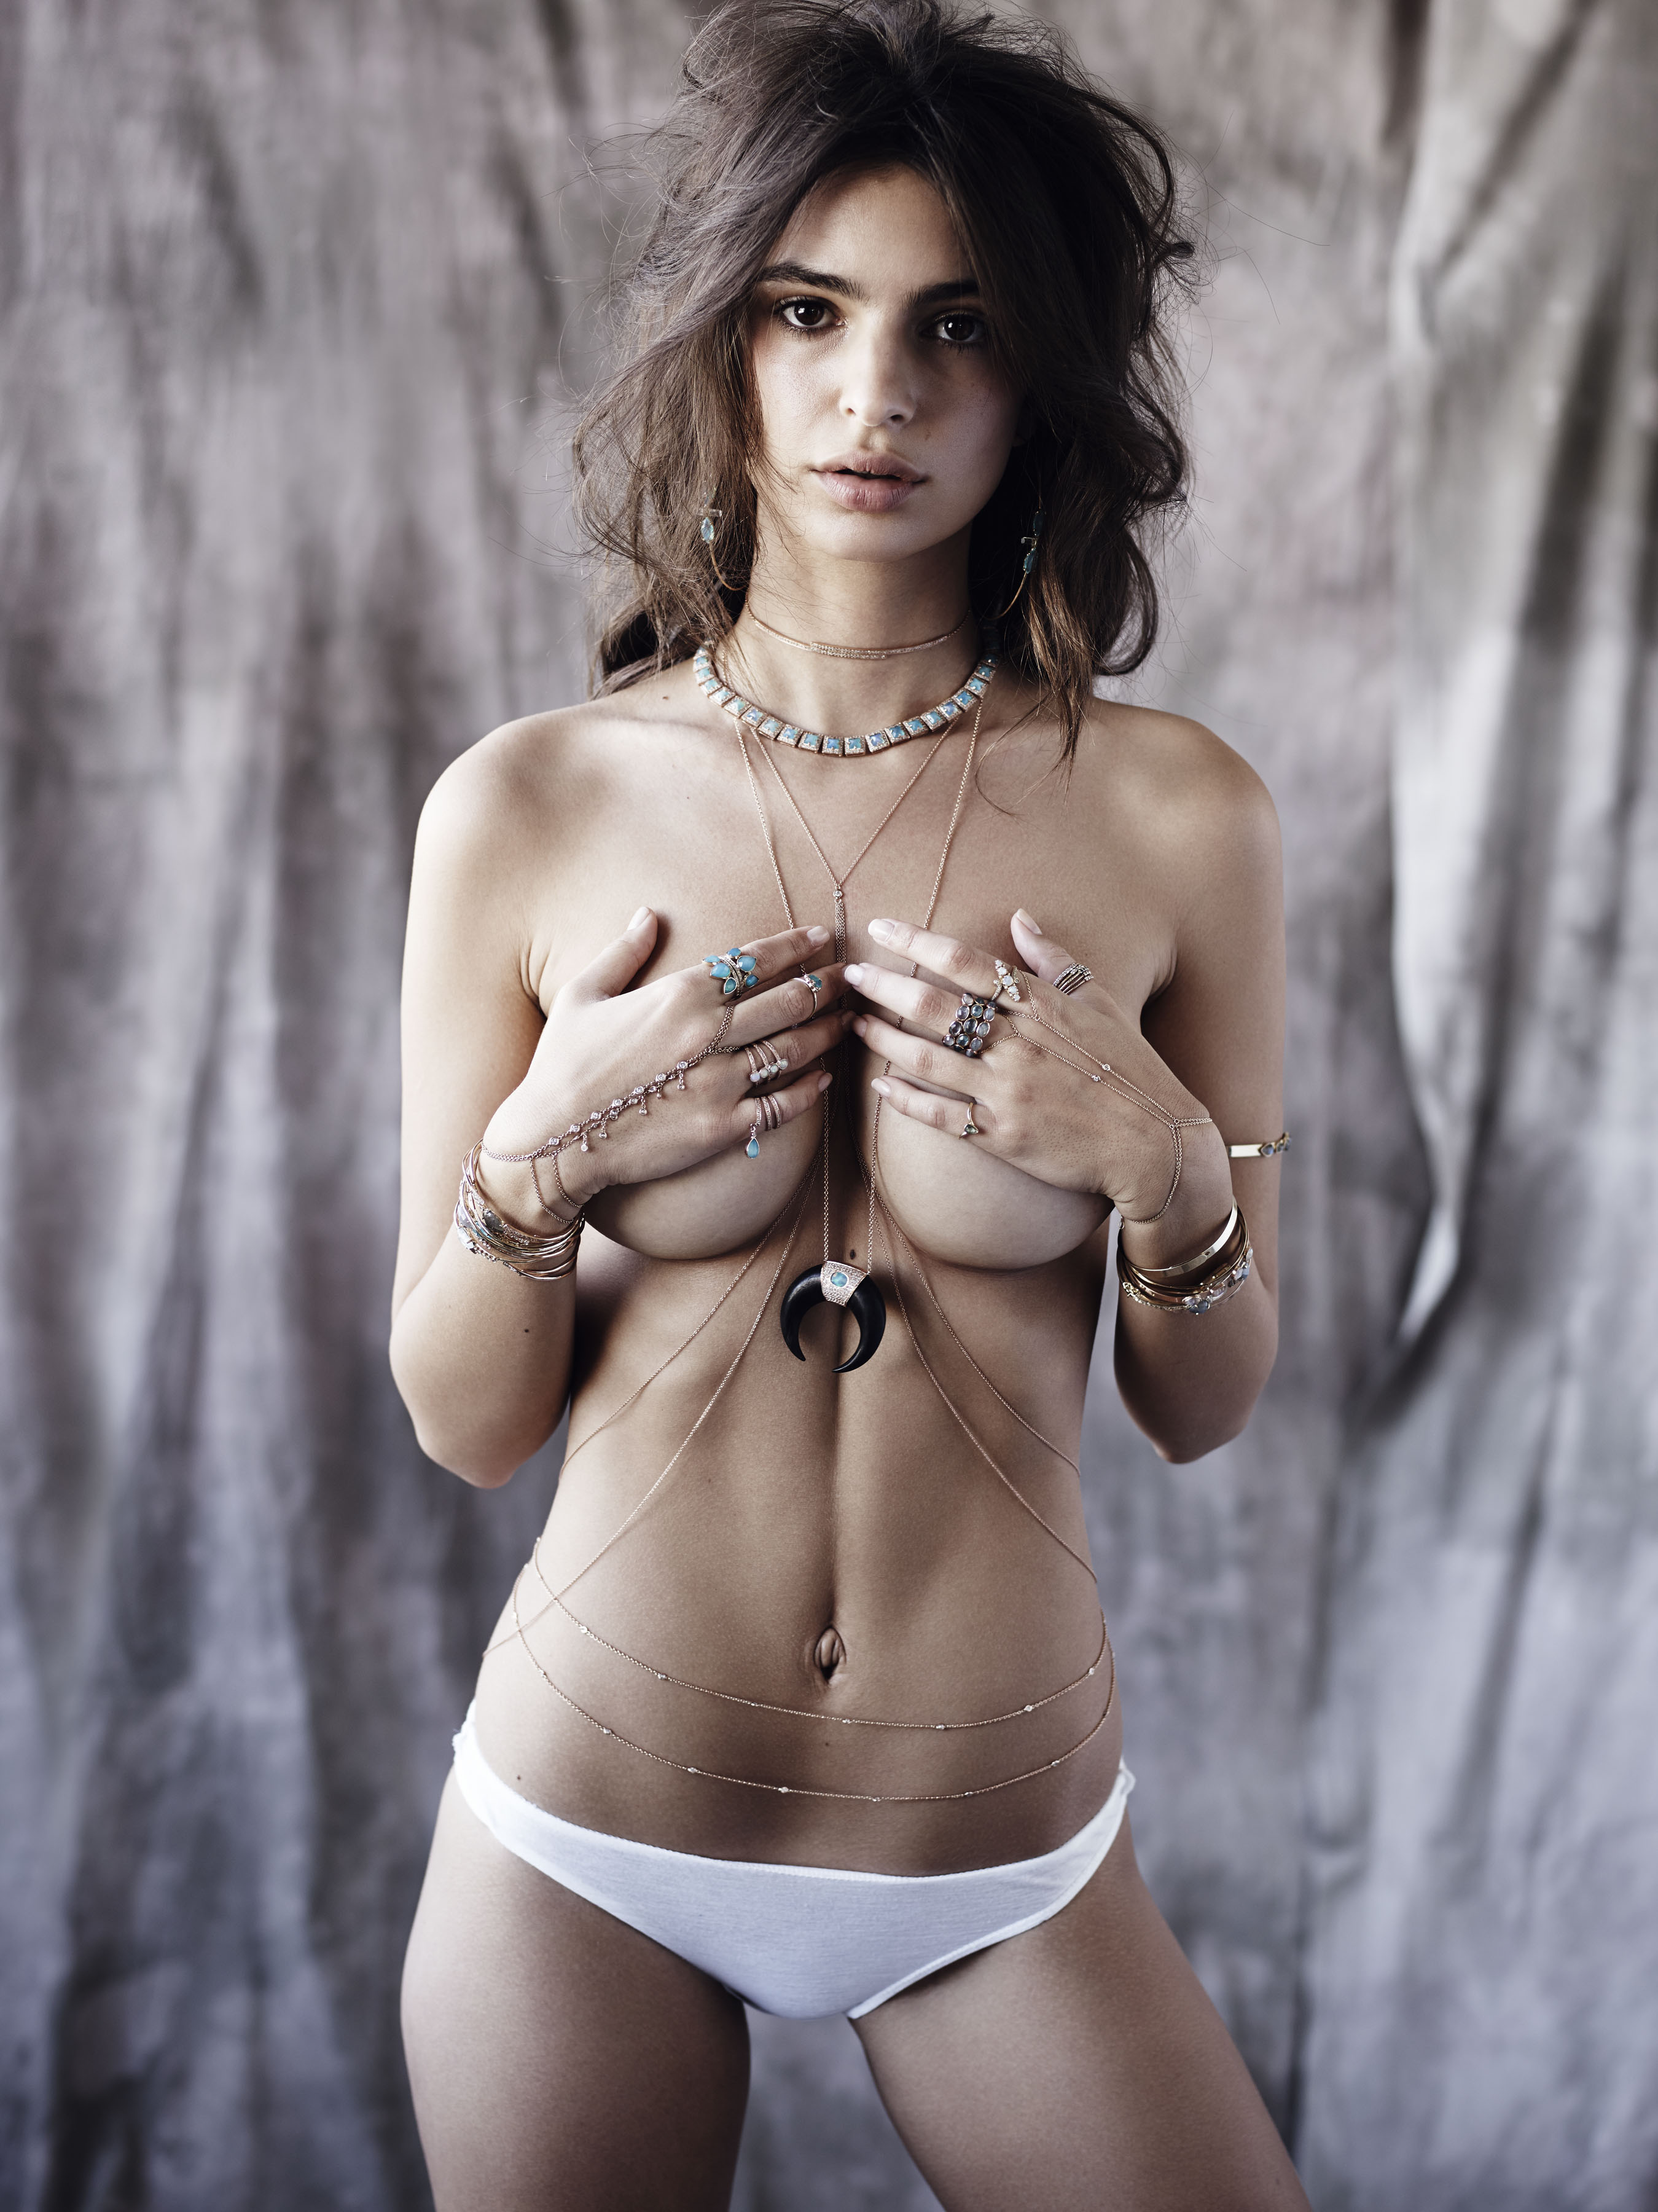 Emily Ratajkowski wearing a whole lot of jewelry and not much else. (Photo credit: Splash News)